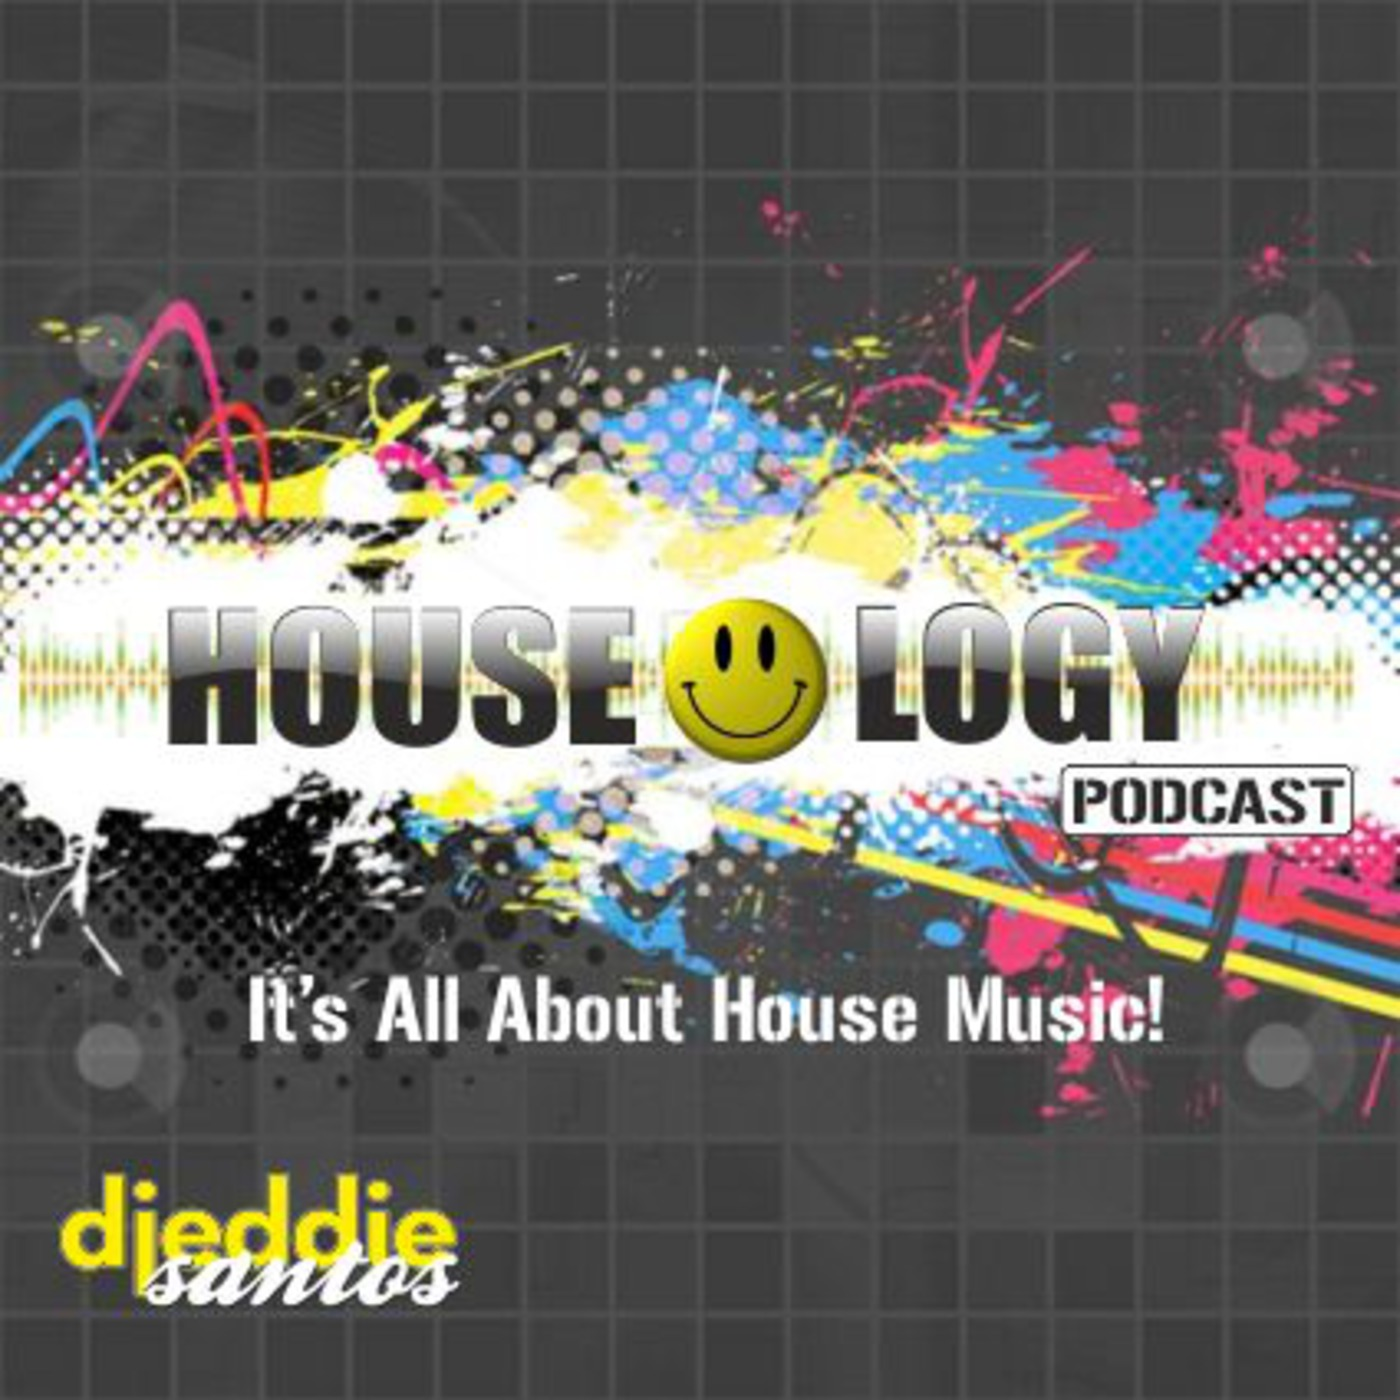 Houseology Podcast (House Music From London)